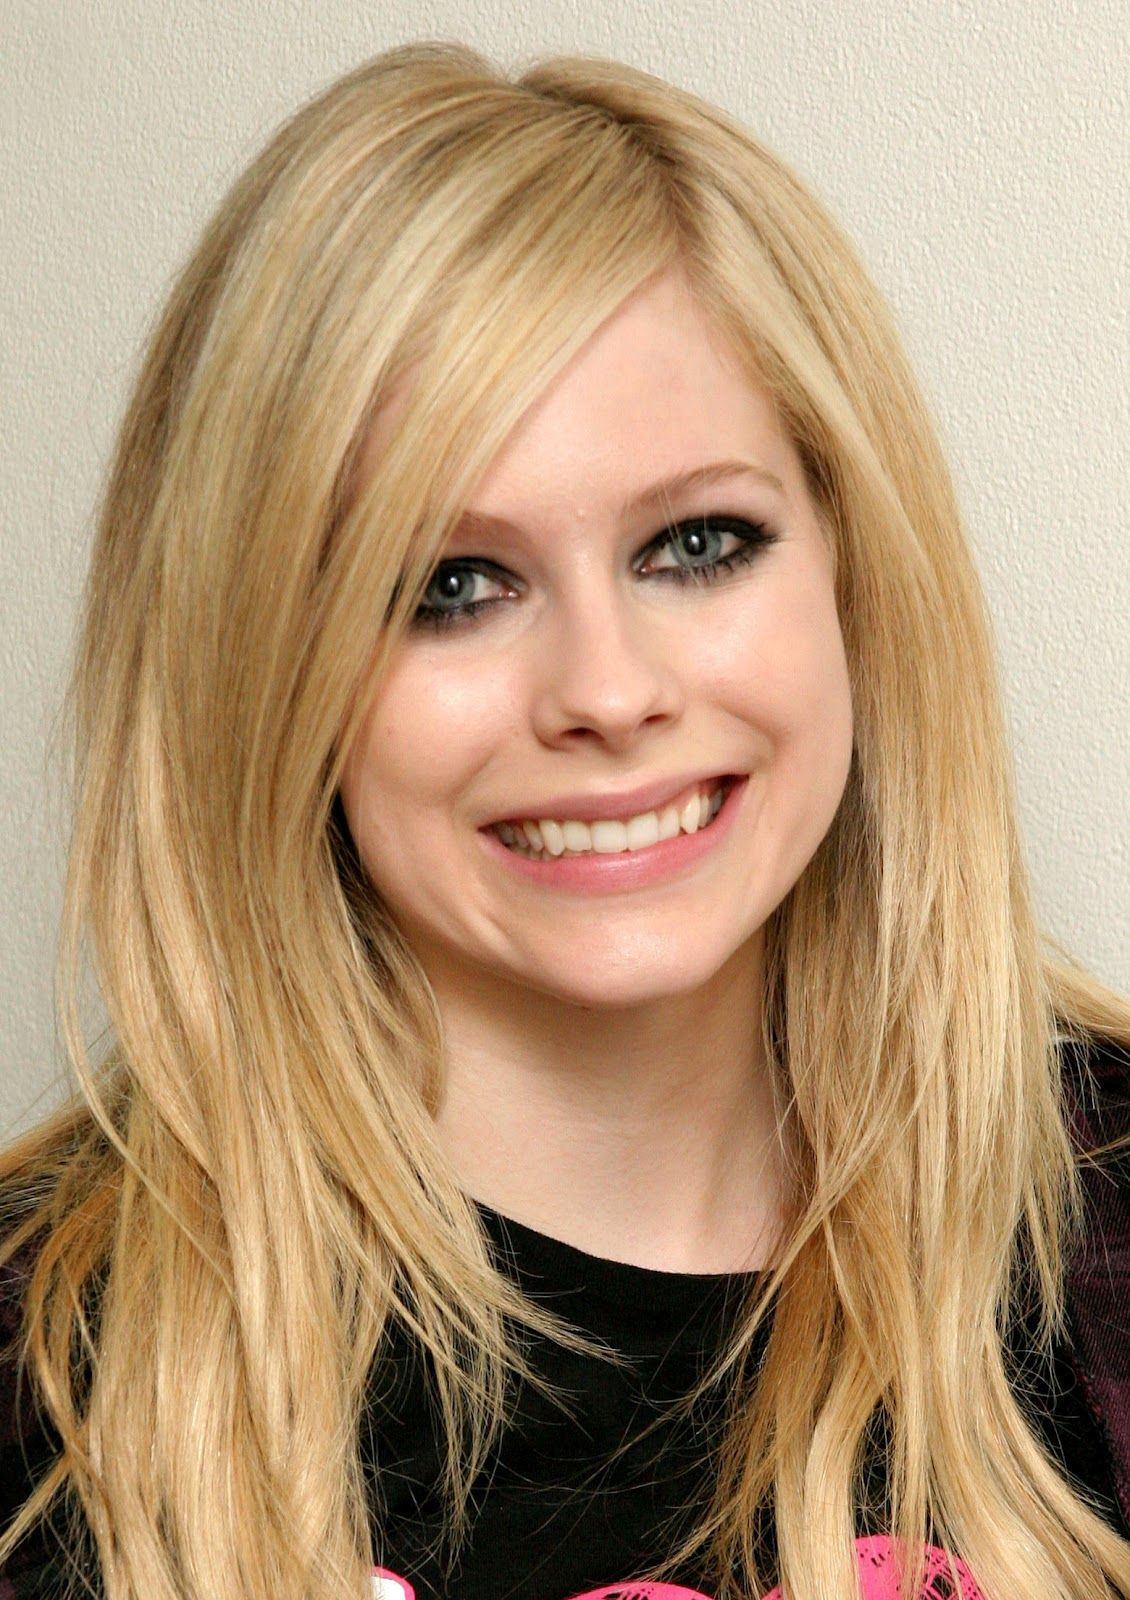 Avril Lavigne Hairstyle Long Hair Styles Hair Styles Avril Lavigne